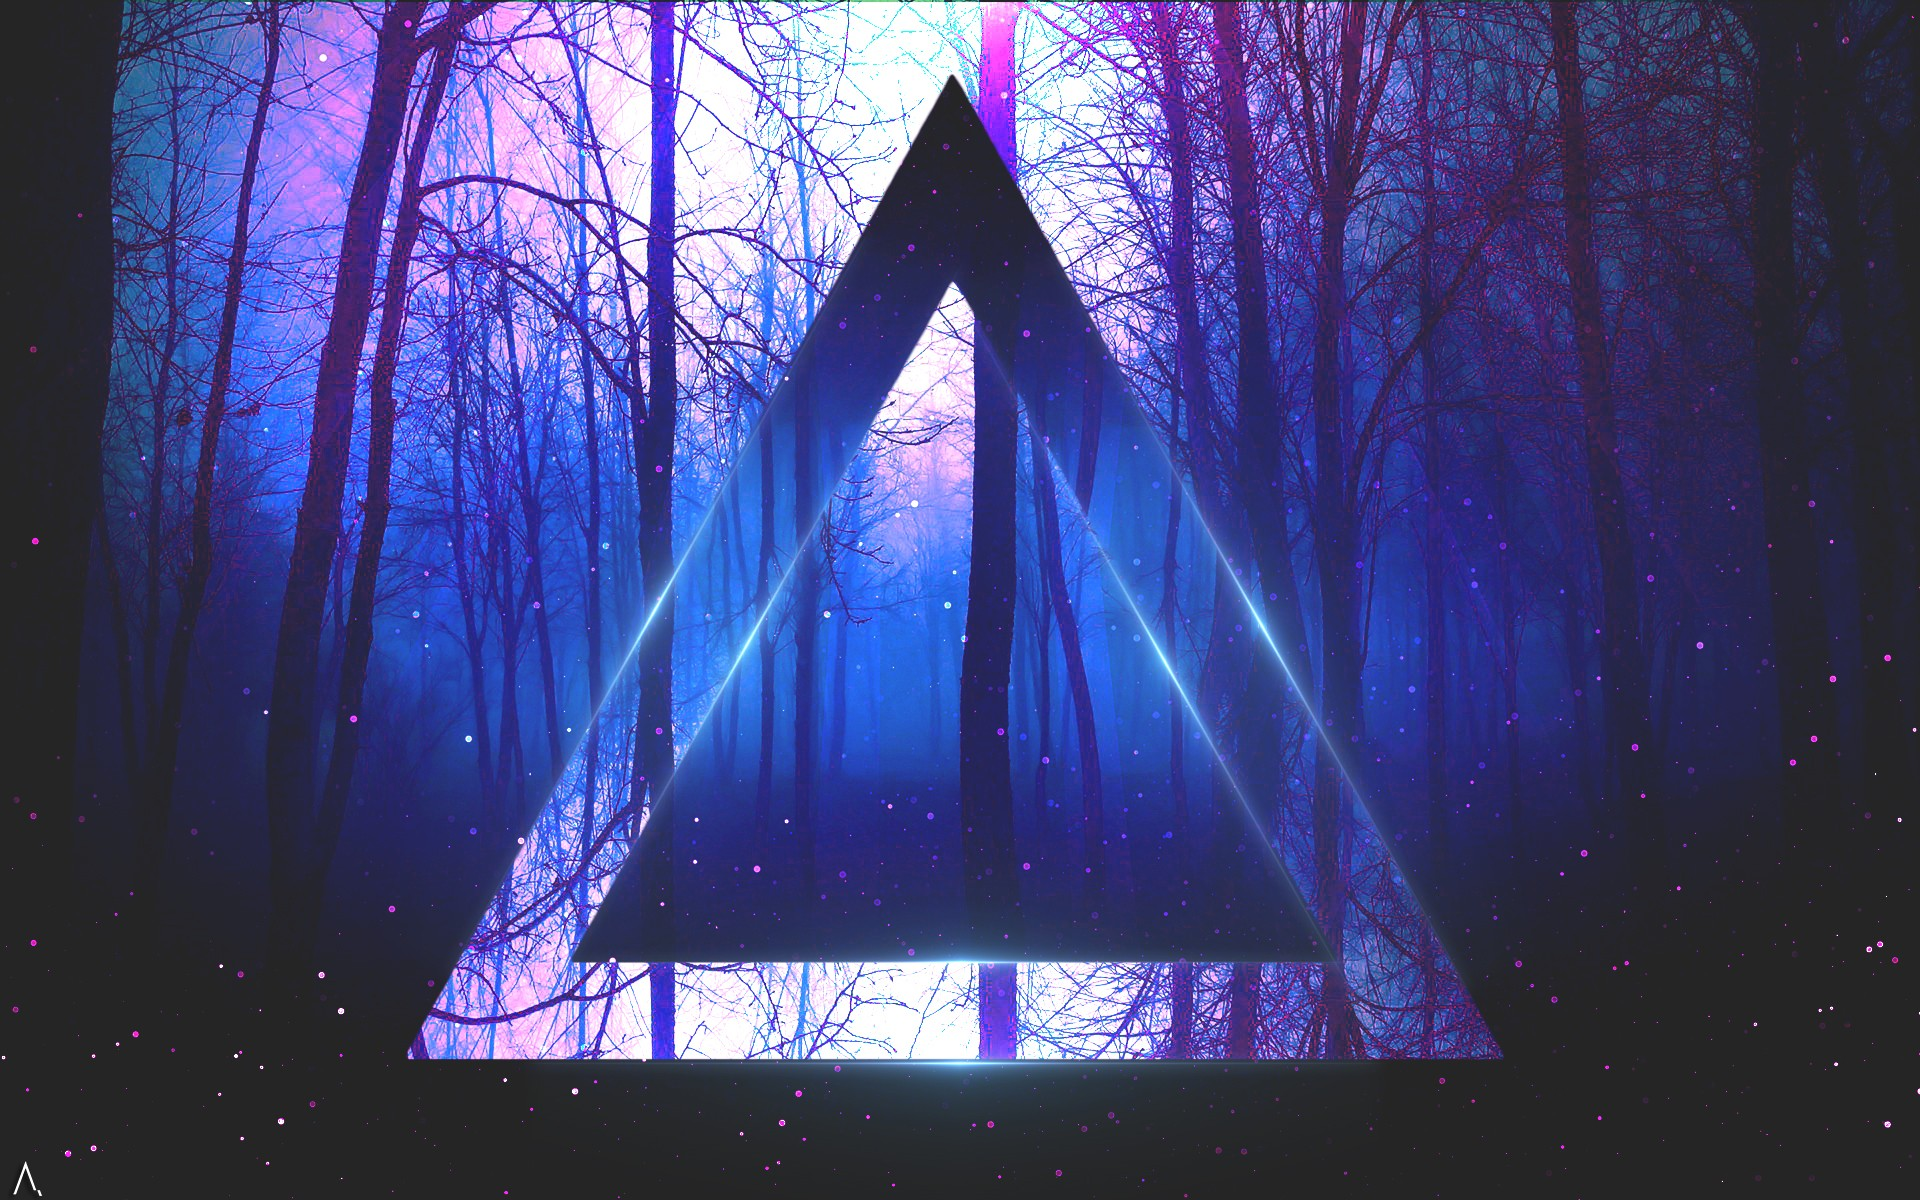 Electric Wallpaper 3d Triangle Artwork Trees Abstract Digital Art Wallpapers